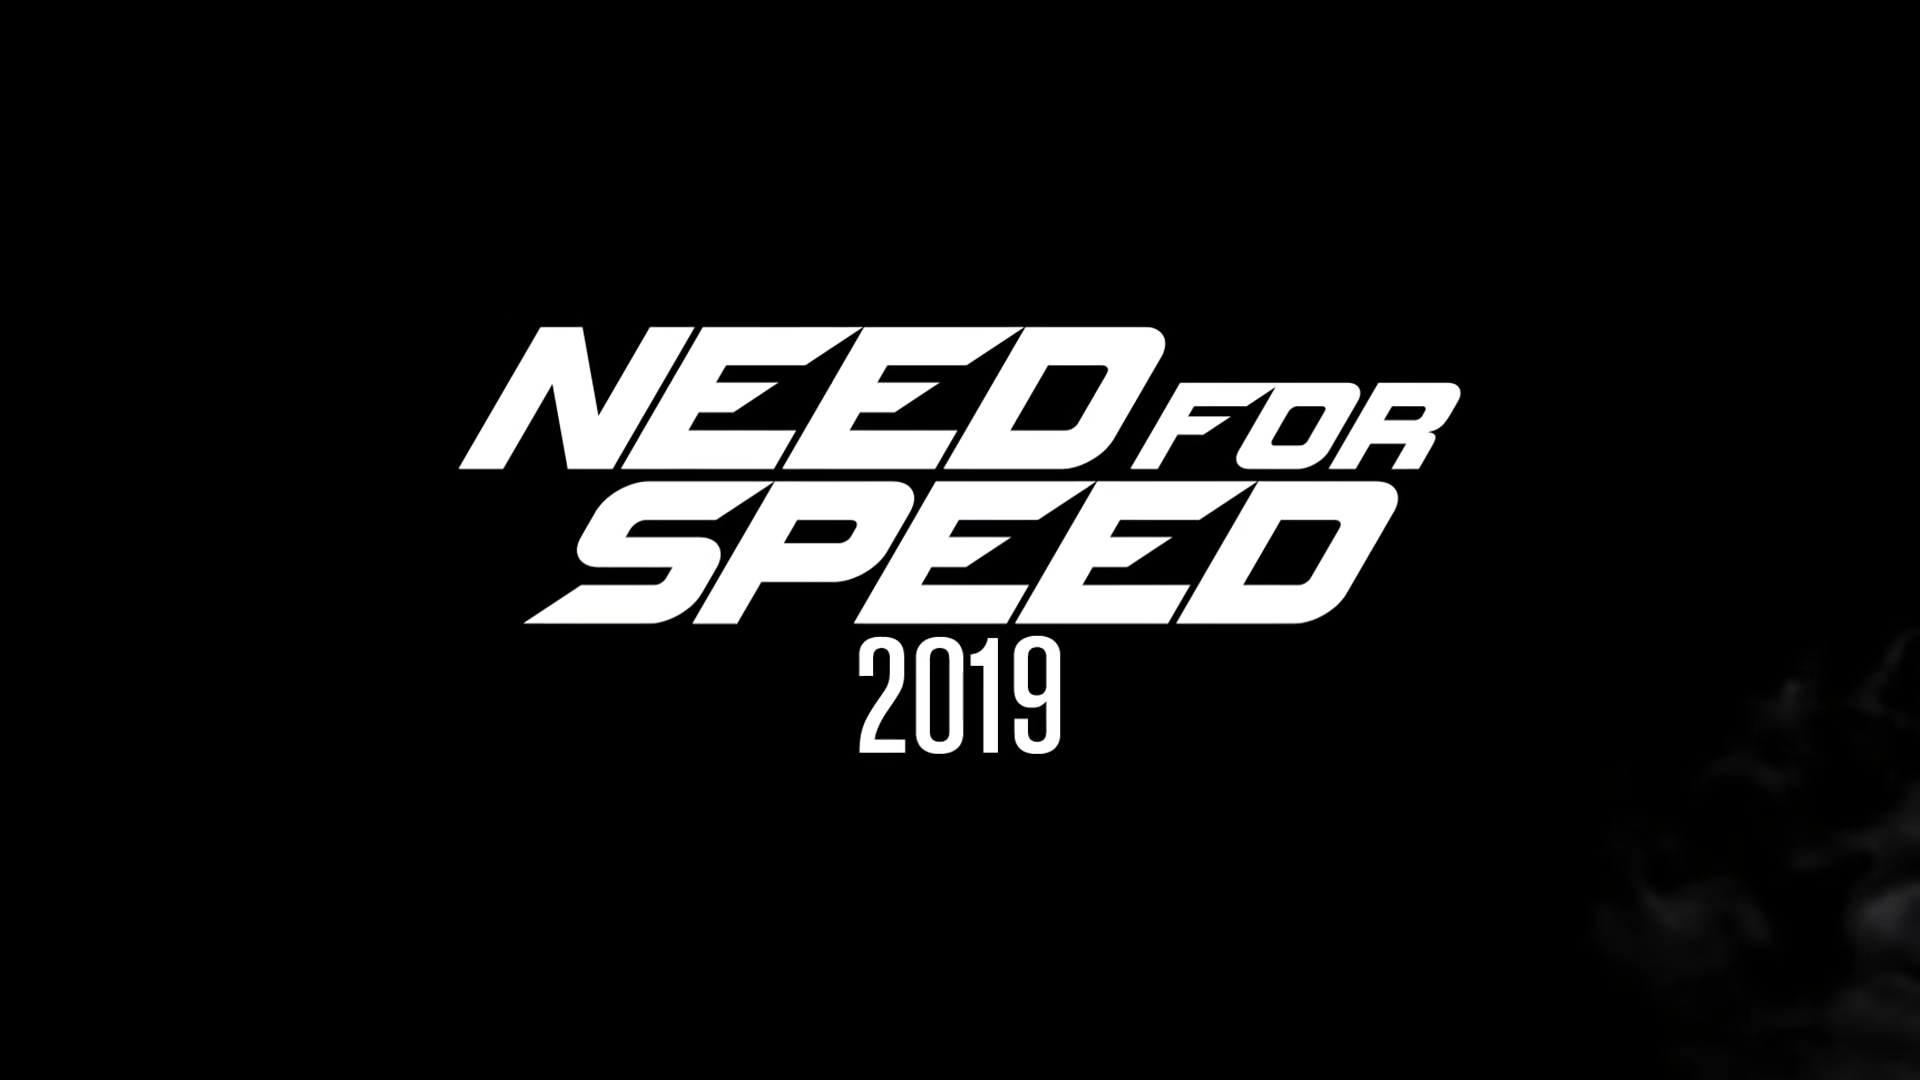 Need for Speed 2019 No Longer A Rumour As Countdown Goes Live On Official EA Website